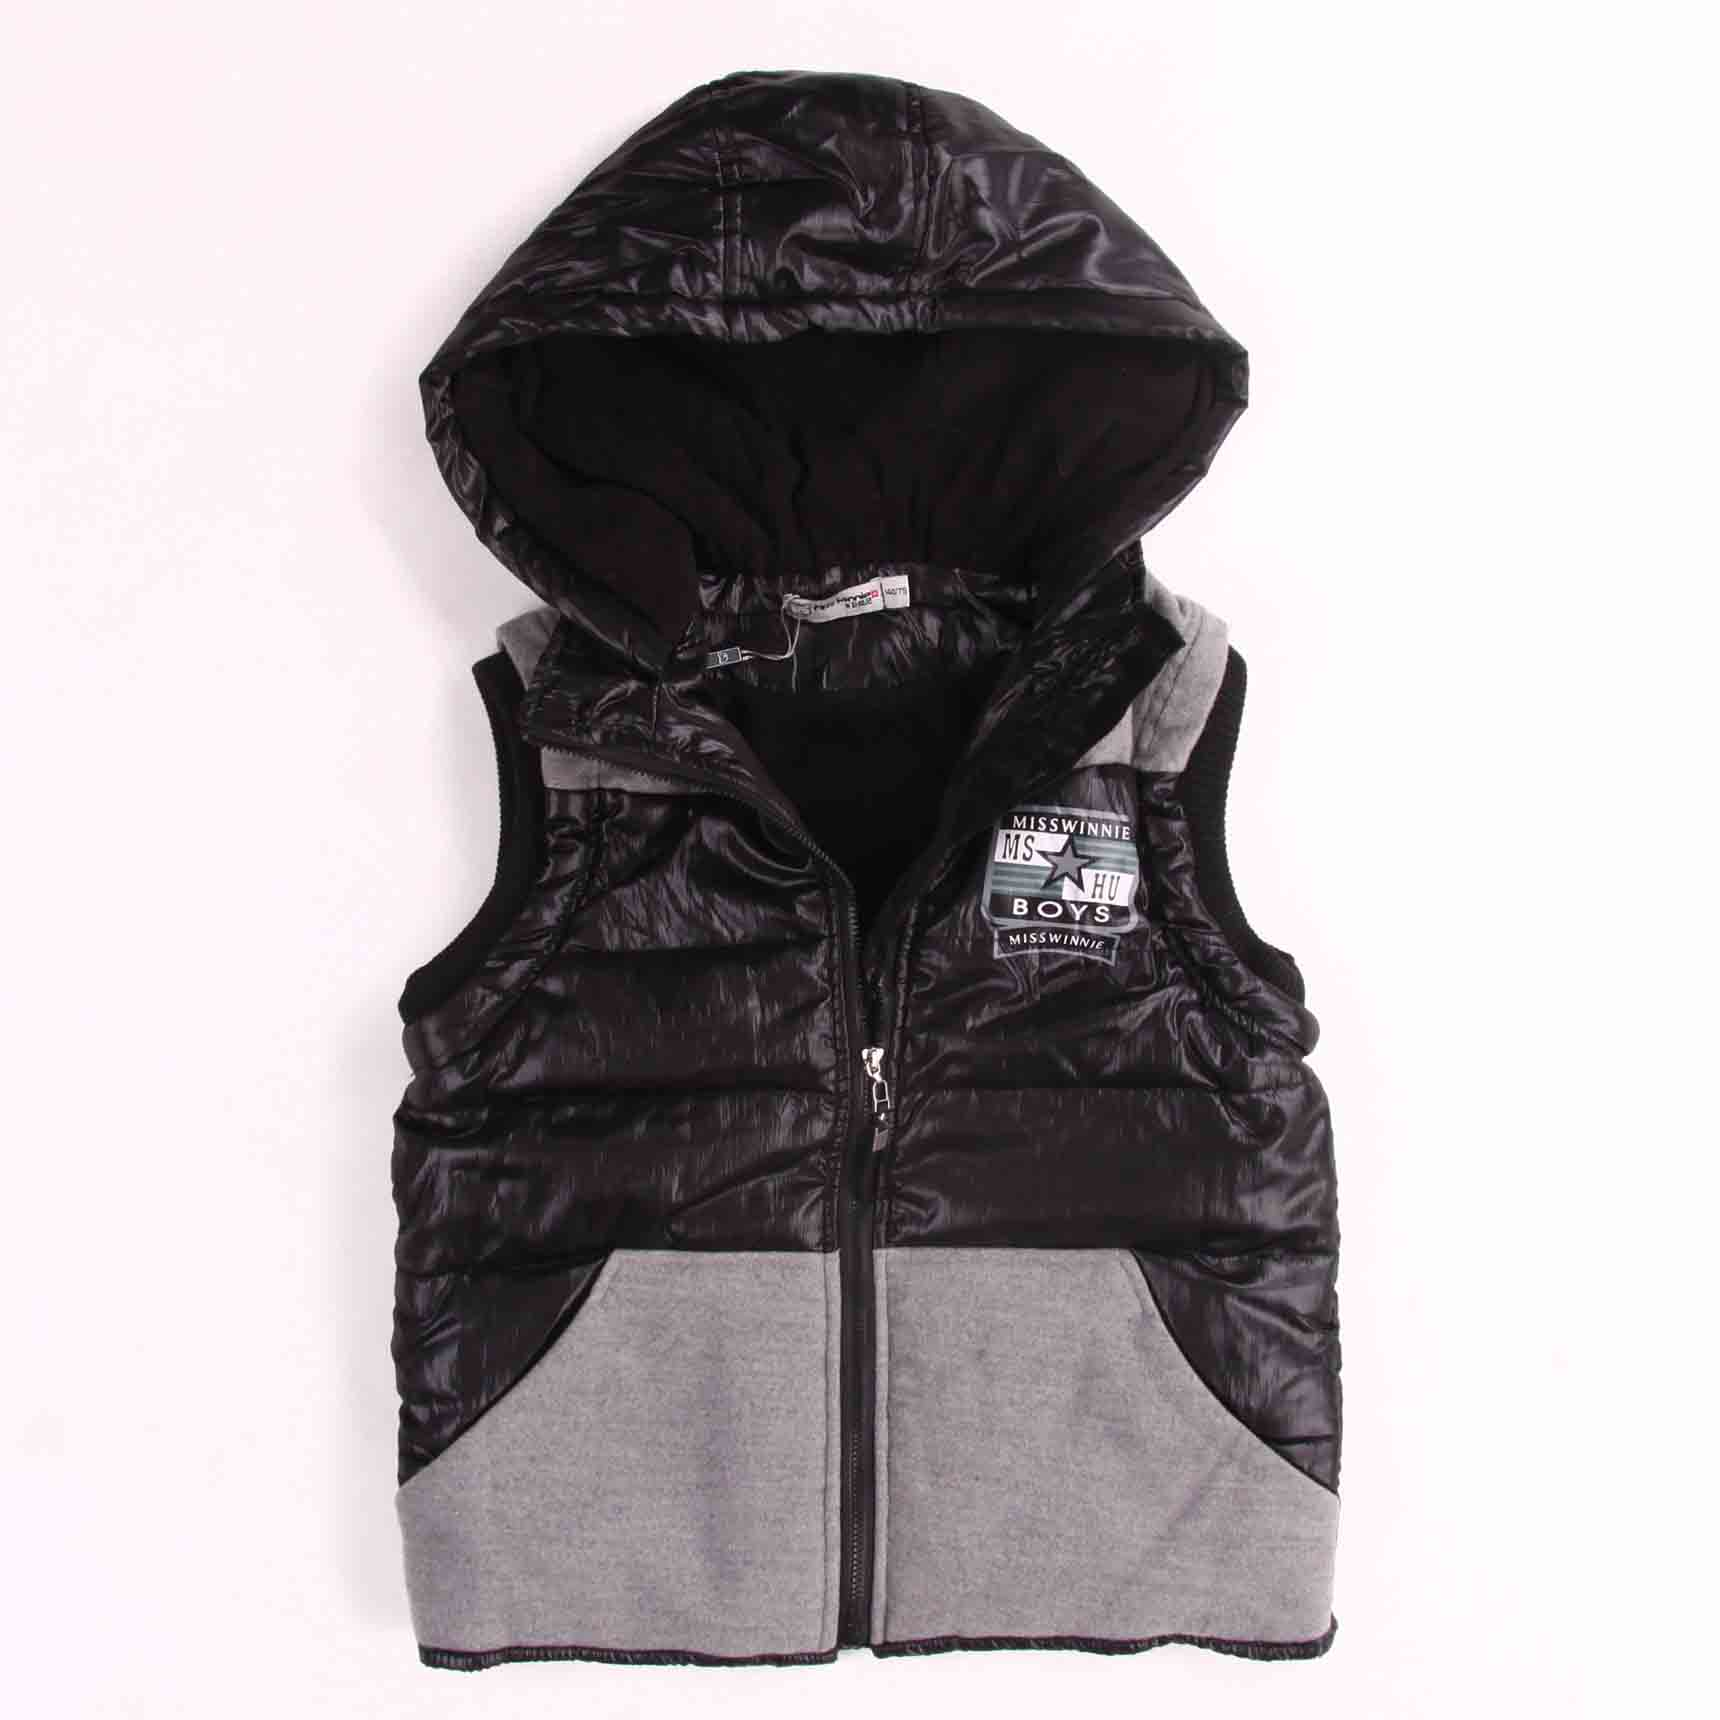 High Quality Wholesale Puffy Hooded Boys Vests China Manufacturer